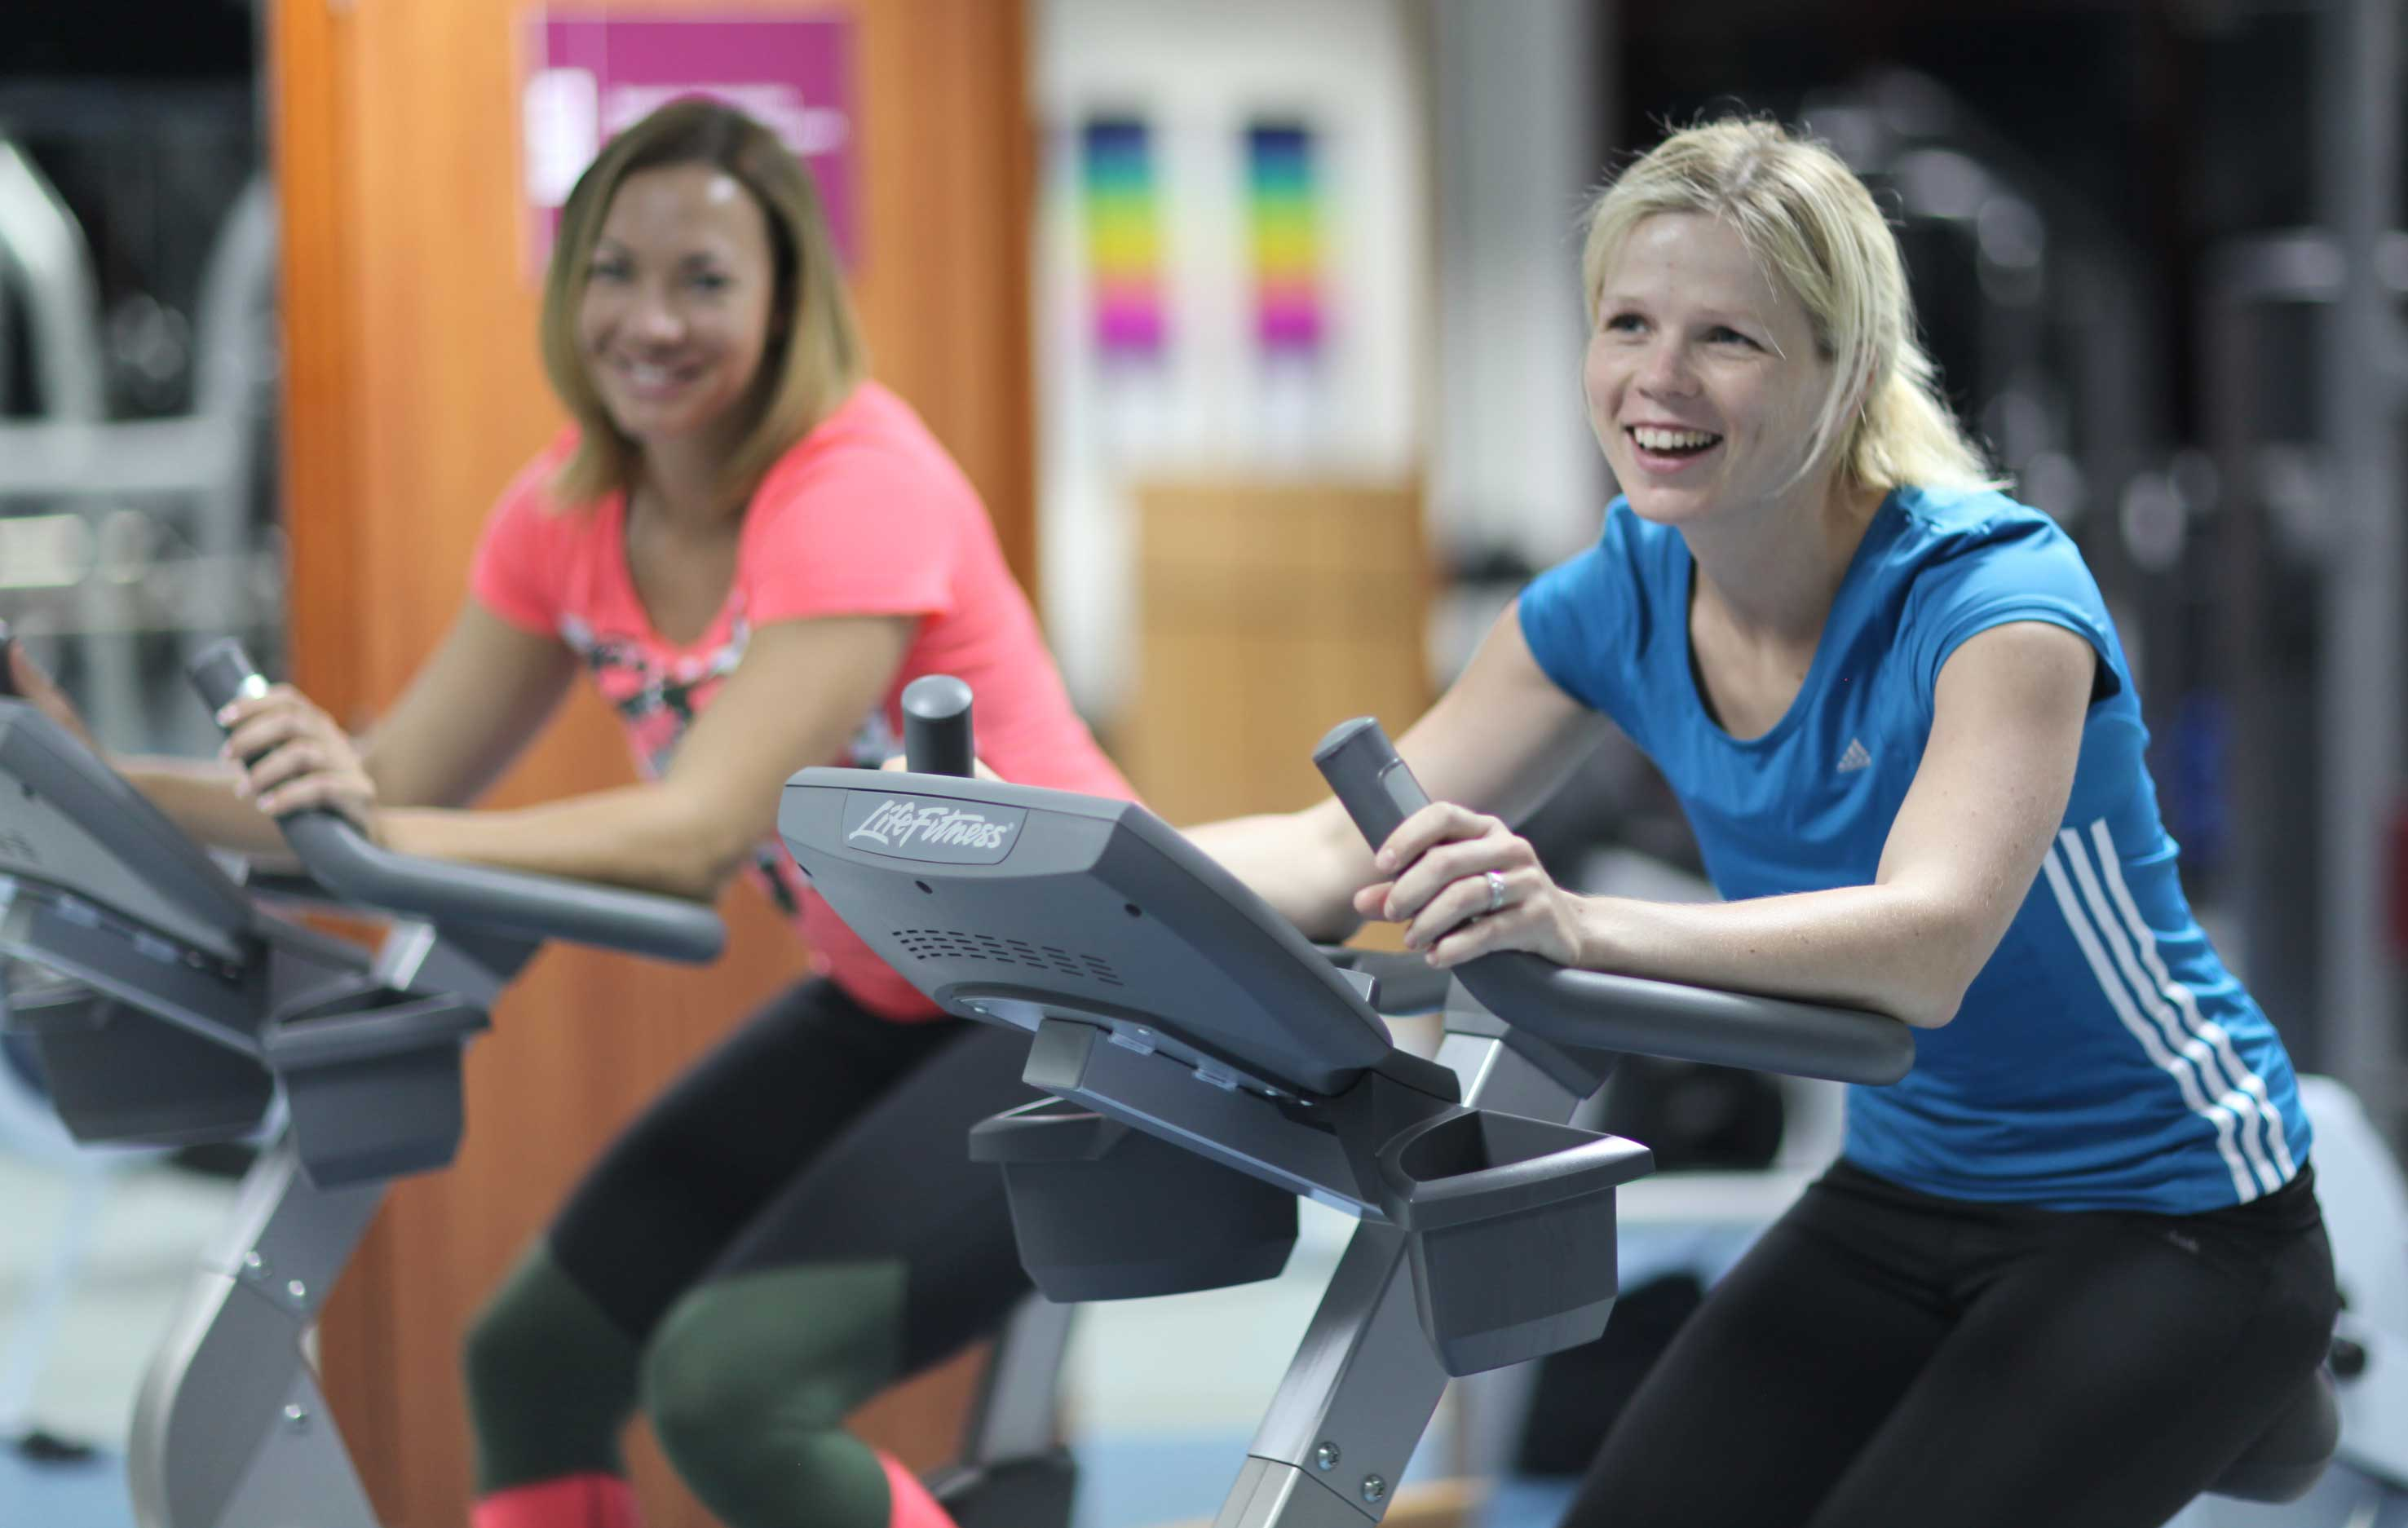 Theresa Moodie and friend in the gym